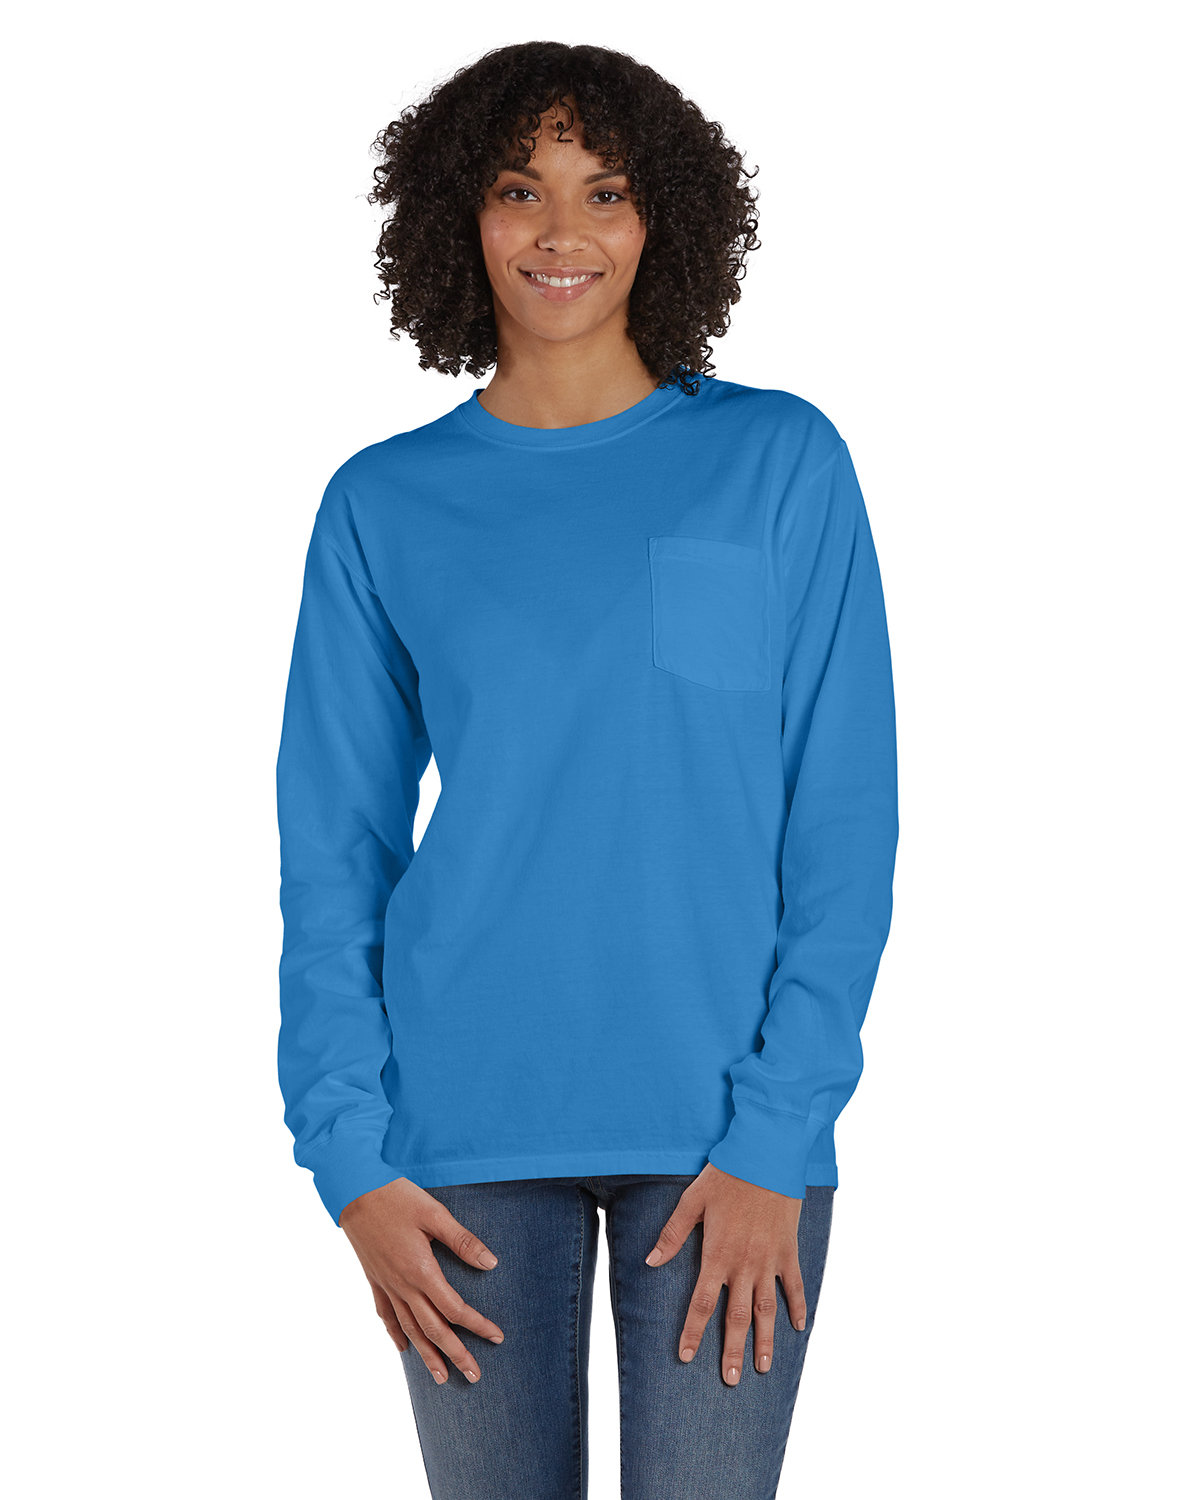 ComfortWash by Hanes Unisex Garment-Dyed Long-Sleeve T-Shirt with Pocket SUMMER SKY